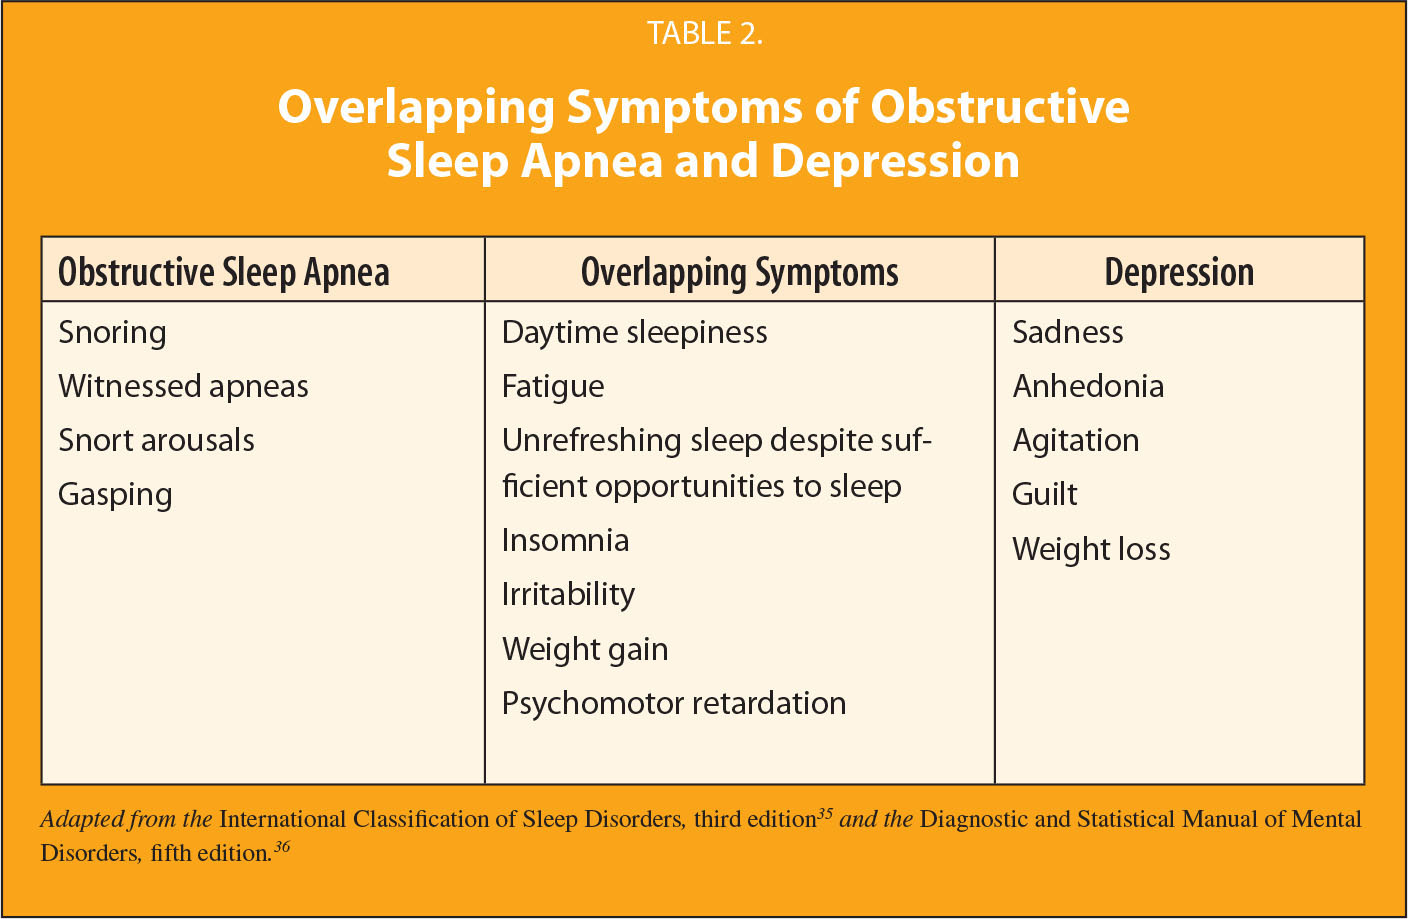 Overlapping Symptoms of Obstructive Sleep Apnea and Depression